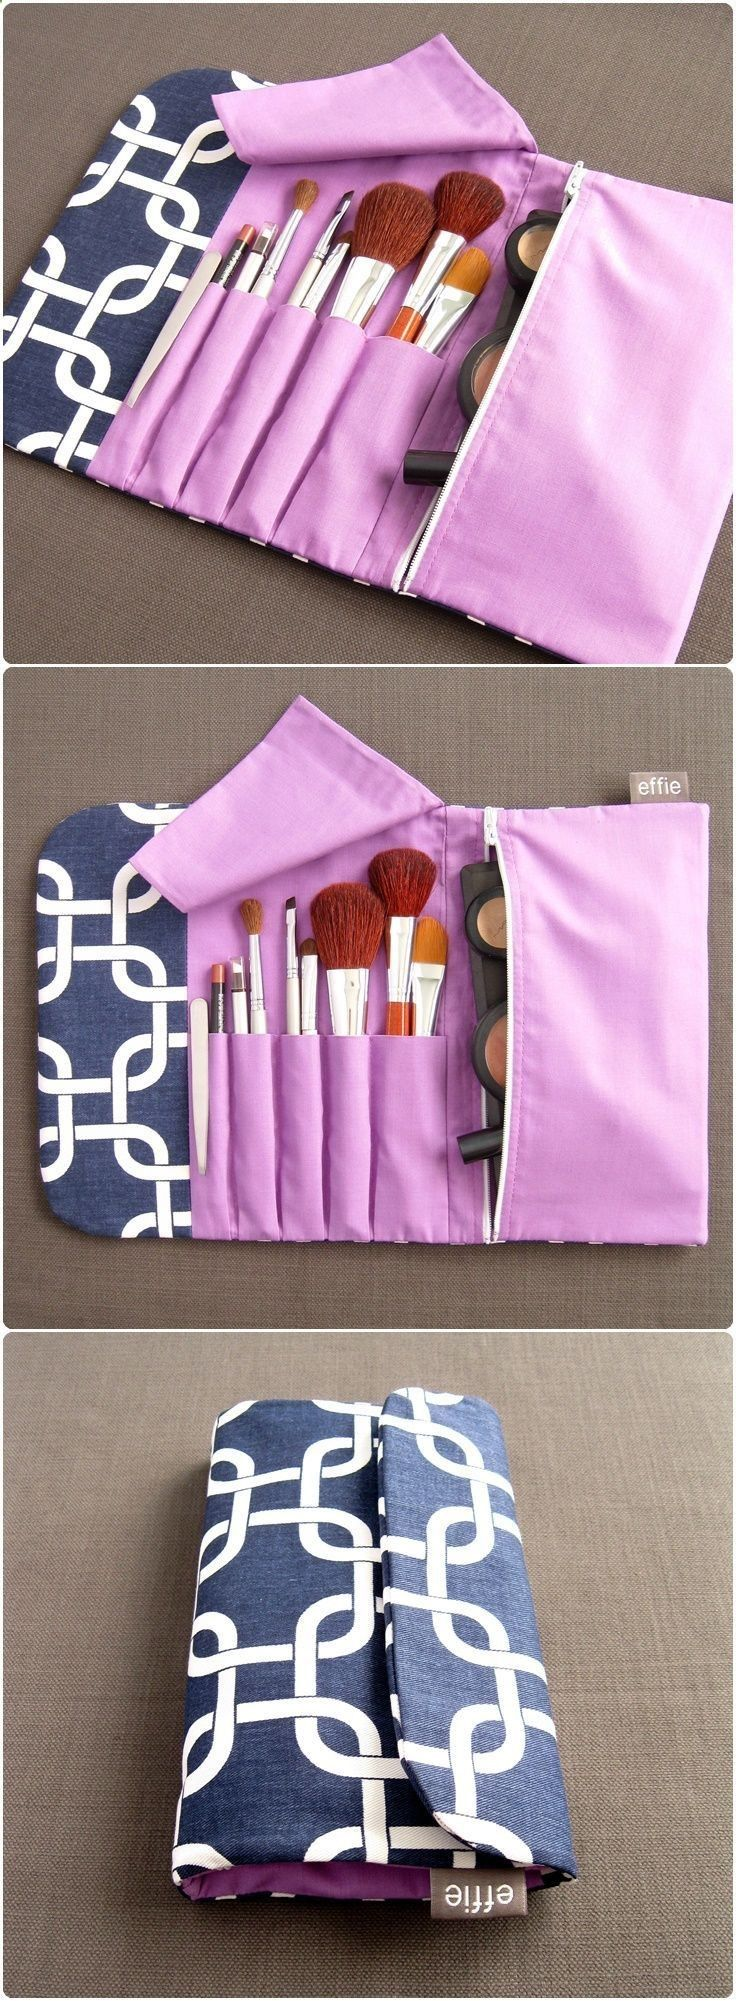 Travel MakeUp Case. AllinOne Brush Roll Makeup Bag in